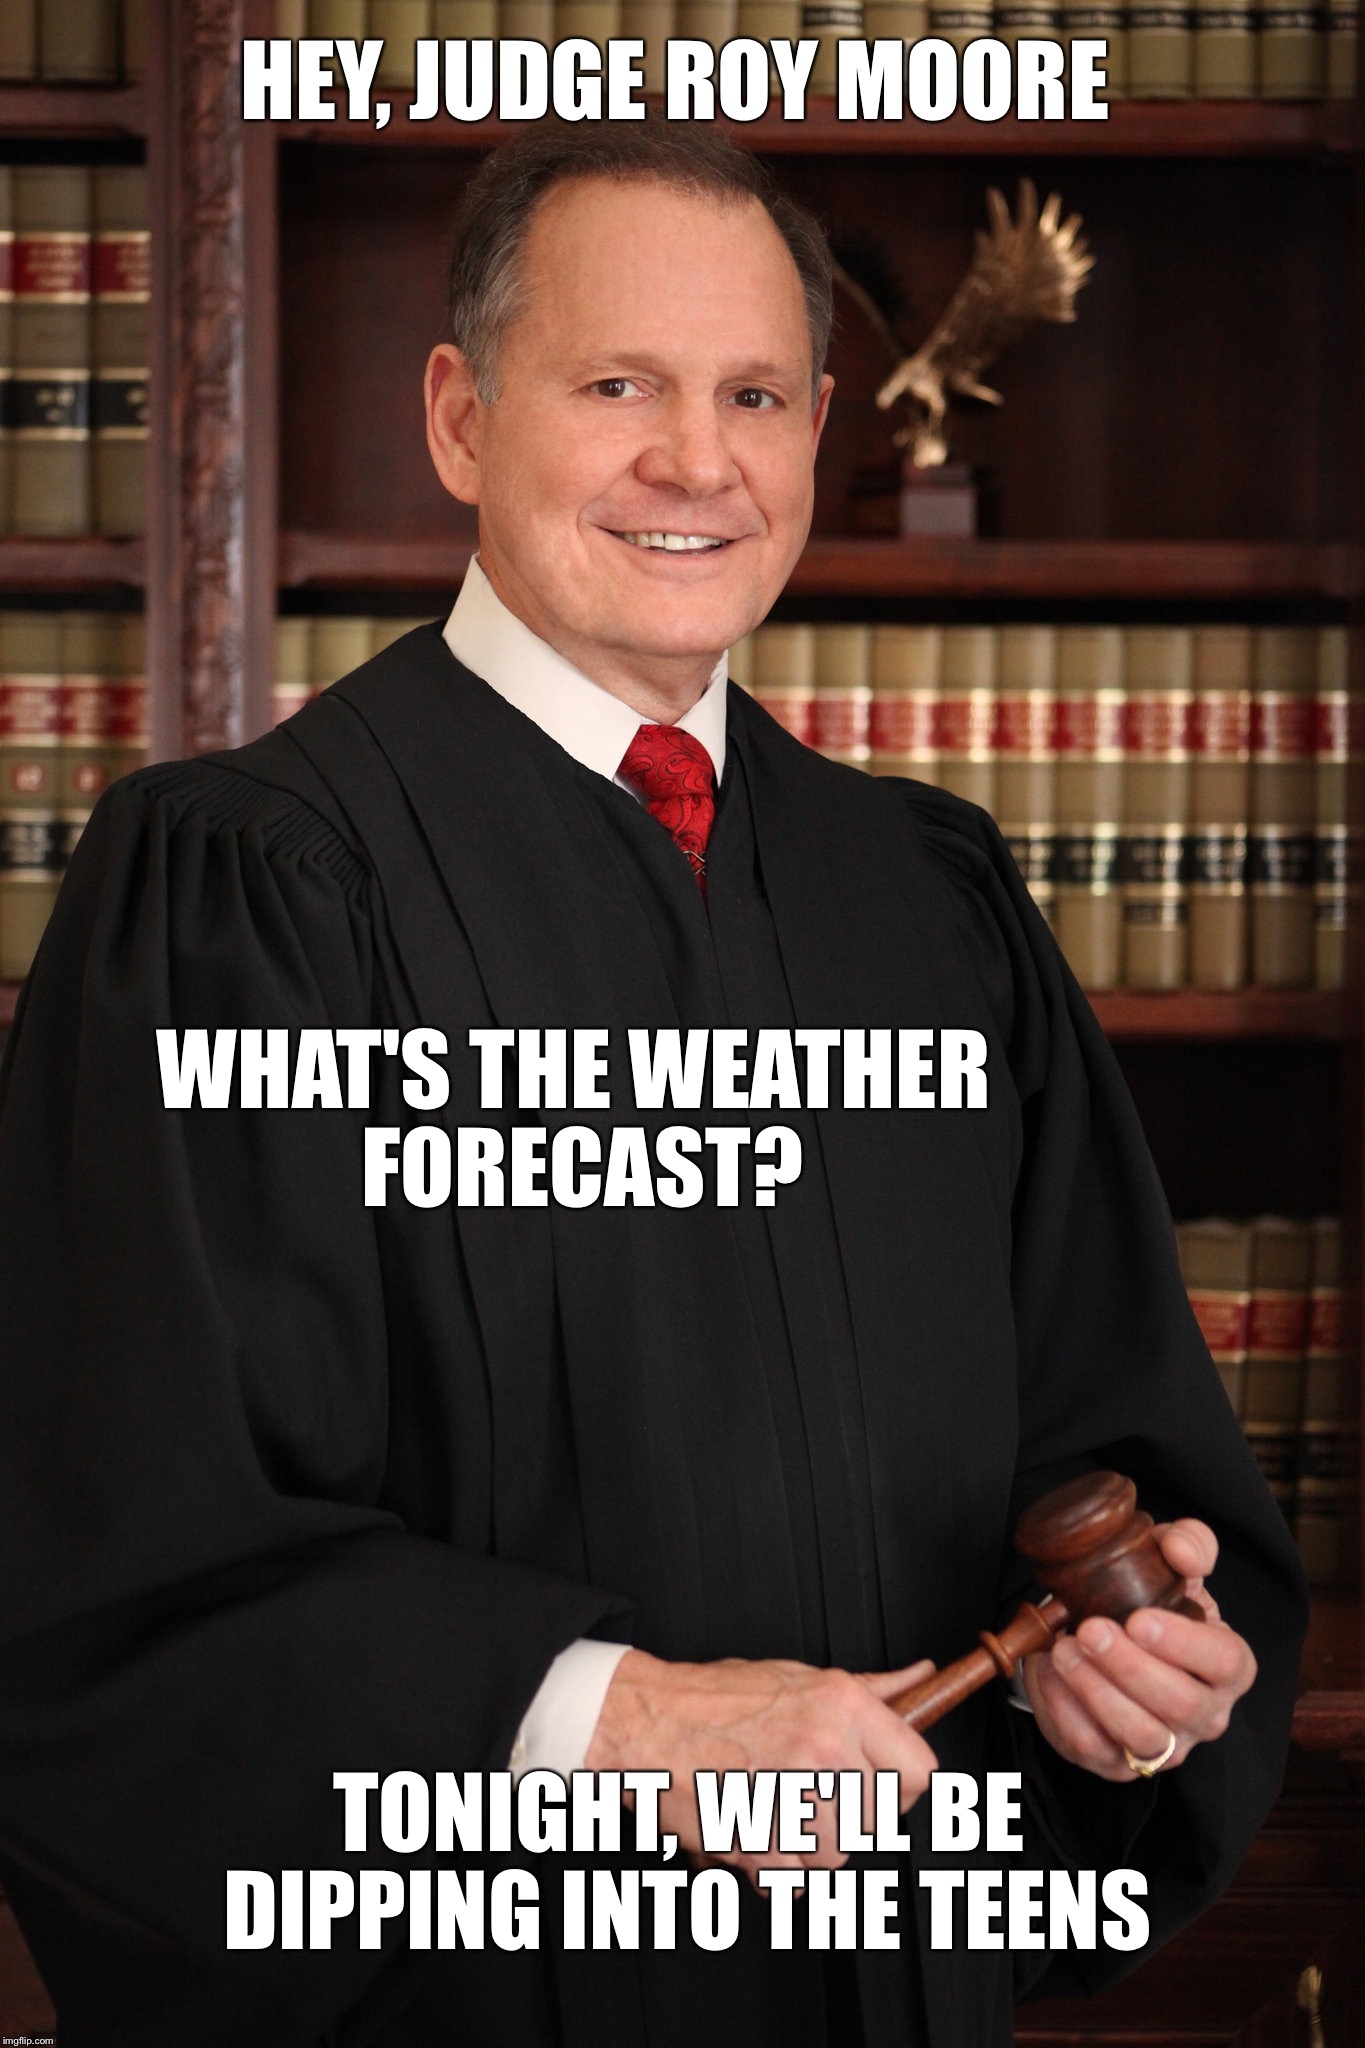 Hey Judge Roy Moore... Whats the Weather Forcast? | HEY, JUDGE ROY MOORE WHAT'S THE WEATHER FORECAST? TONIGHT, WE'LL BE DIPPING INTO THE TEENS | image tagged in judge roy moore,alabama,weather | made w/ Imgflip meme maker